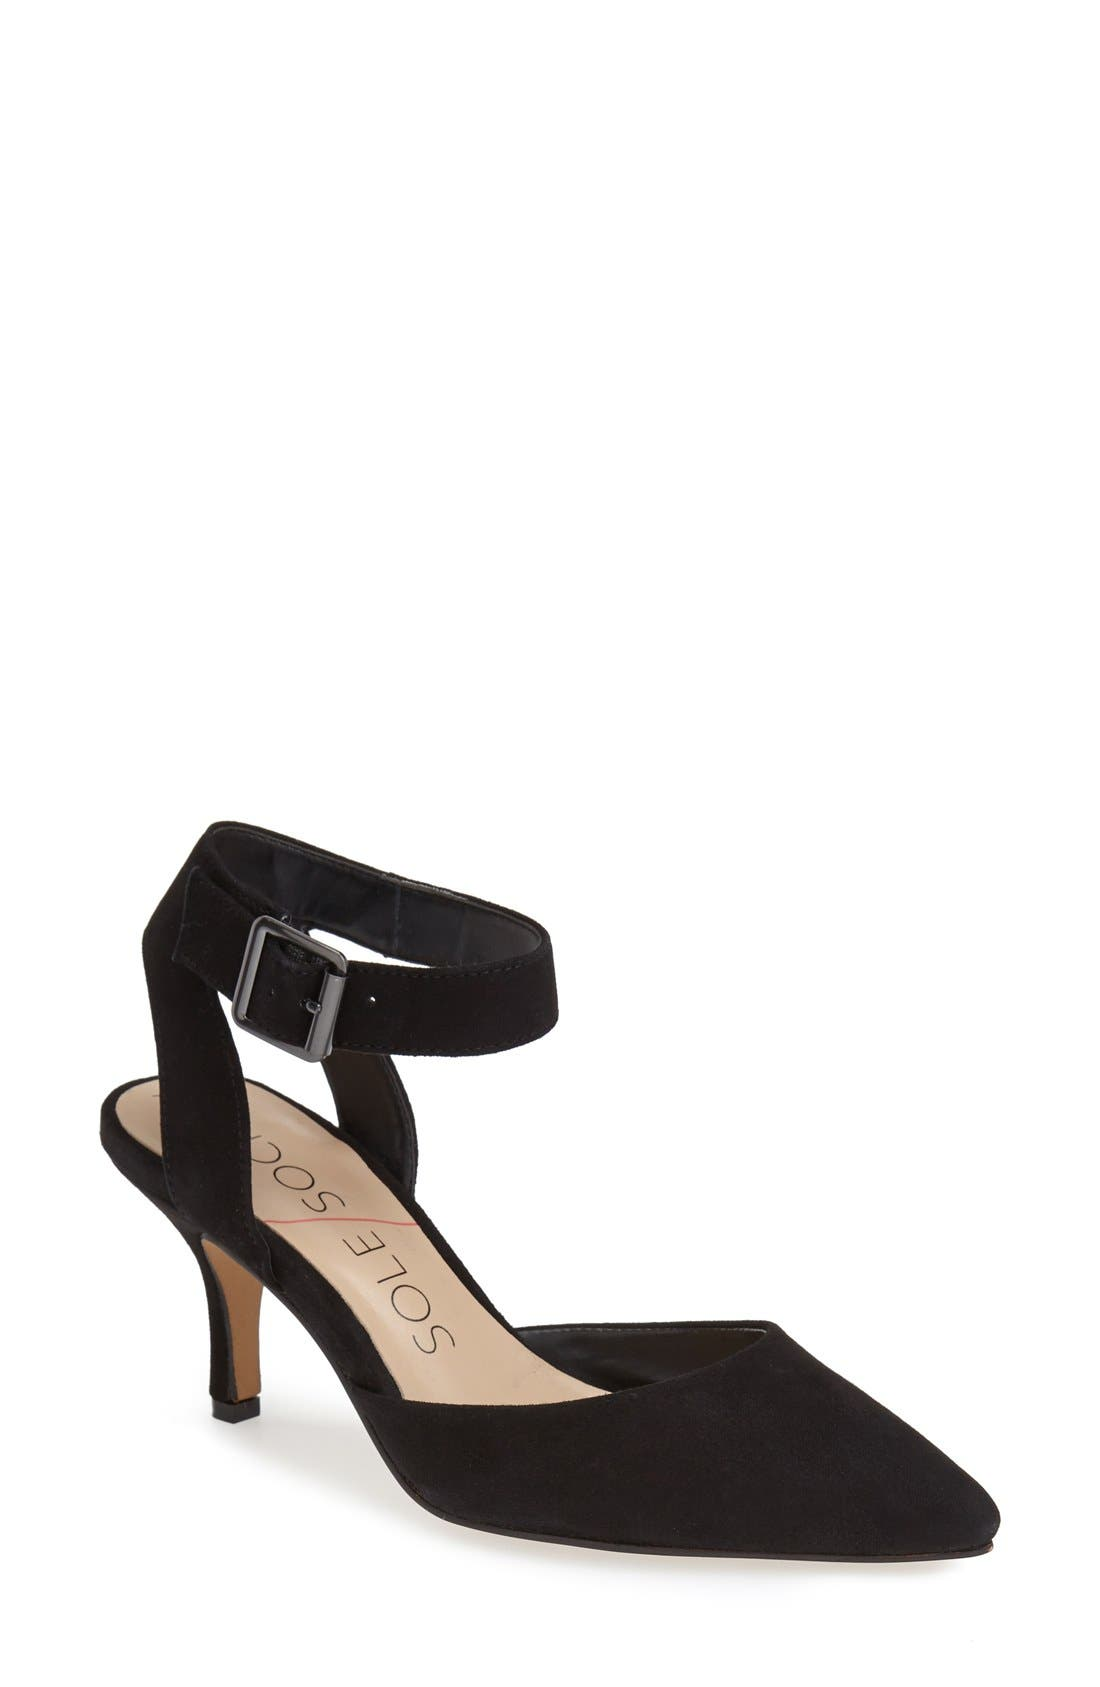 Alternate Image 1 Selected - Sole Society 'Olyvia' Suede Pump (Women)